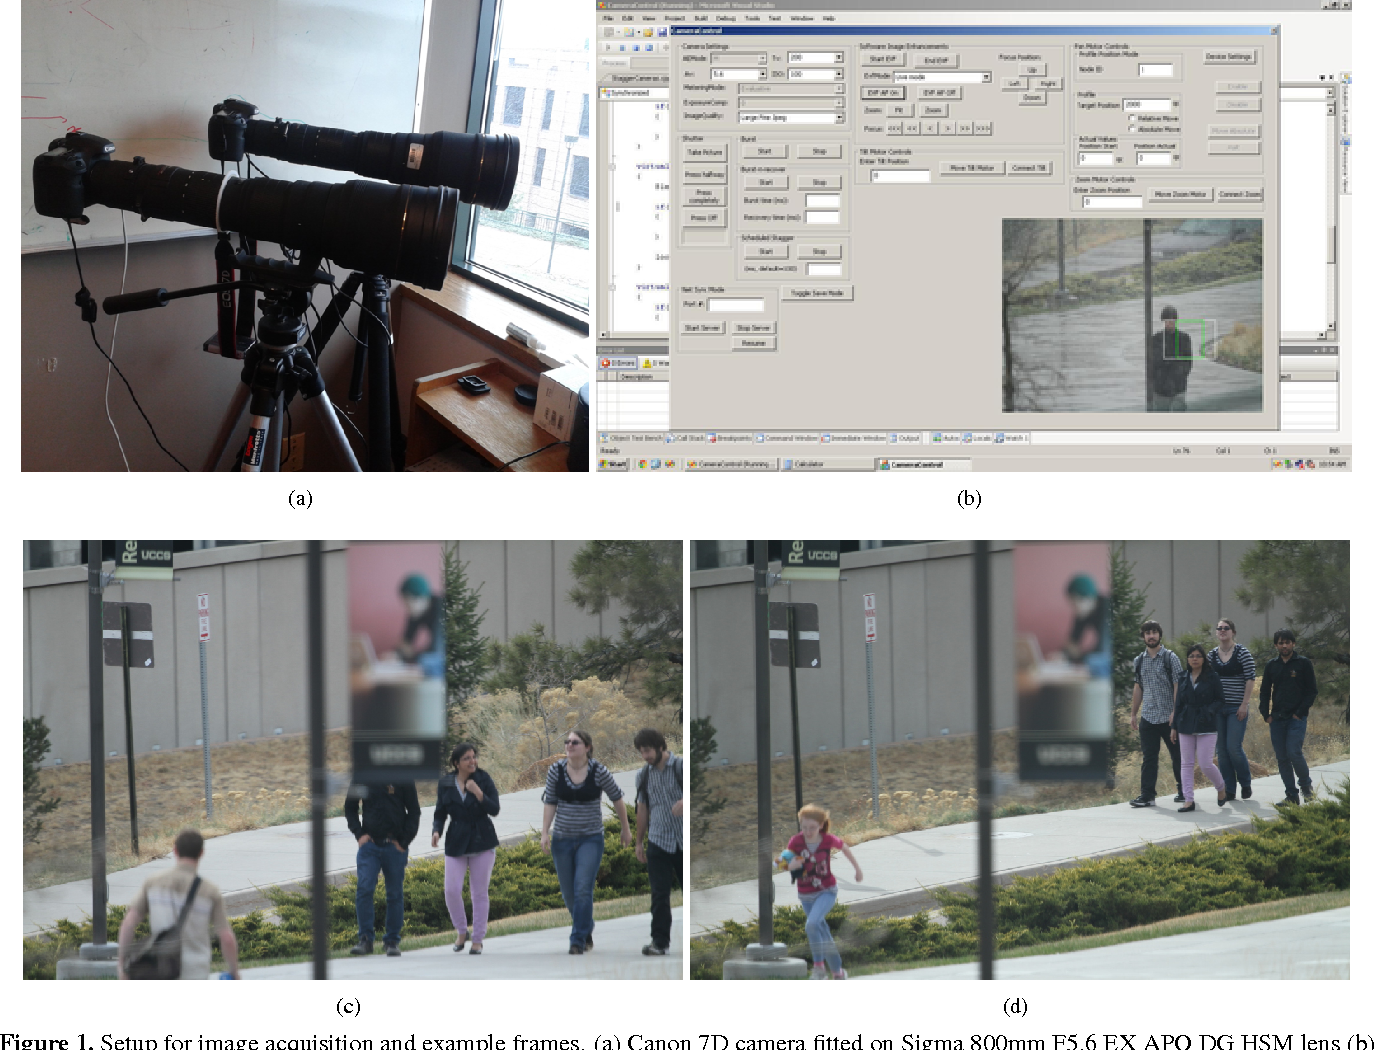 Figure 1. Setup for image acquisition and example frames. (a) Canon 7D camera fitted on Sigma 800mm F5.6 EX APO DG HSM lens (b) Screenshot of the GUI of software for capturing images. (c) and (d) example of image frames captured at the distance of approximately 100m and 150m respectively.